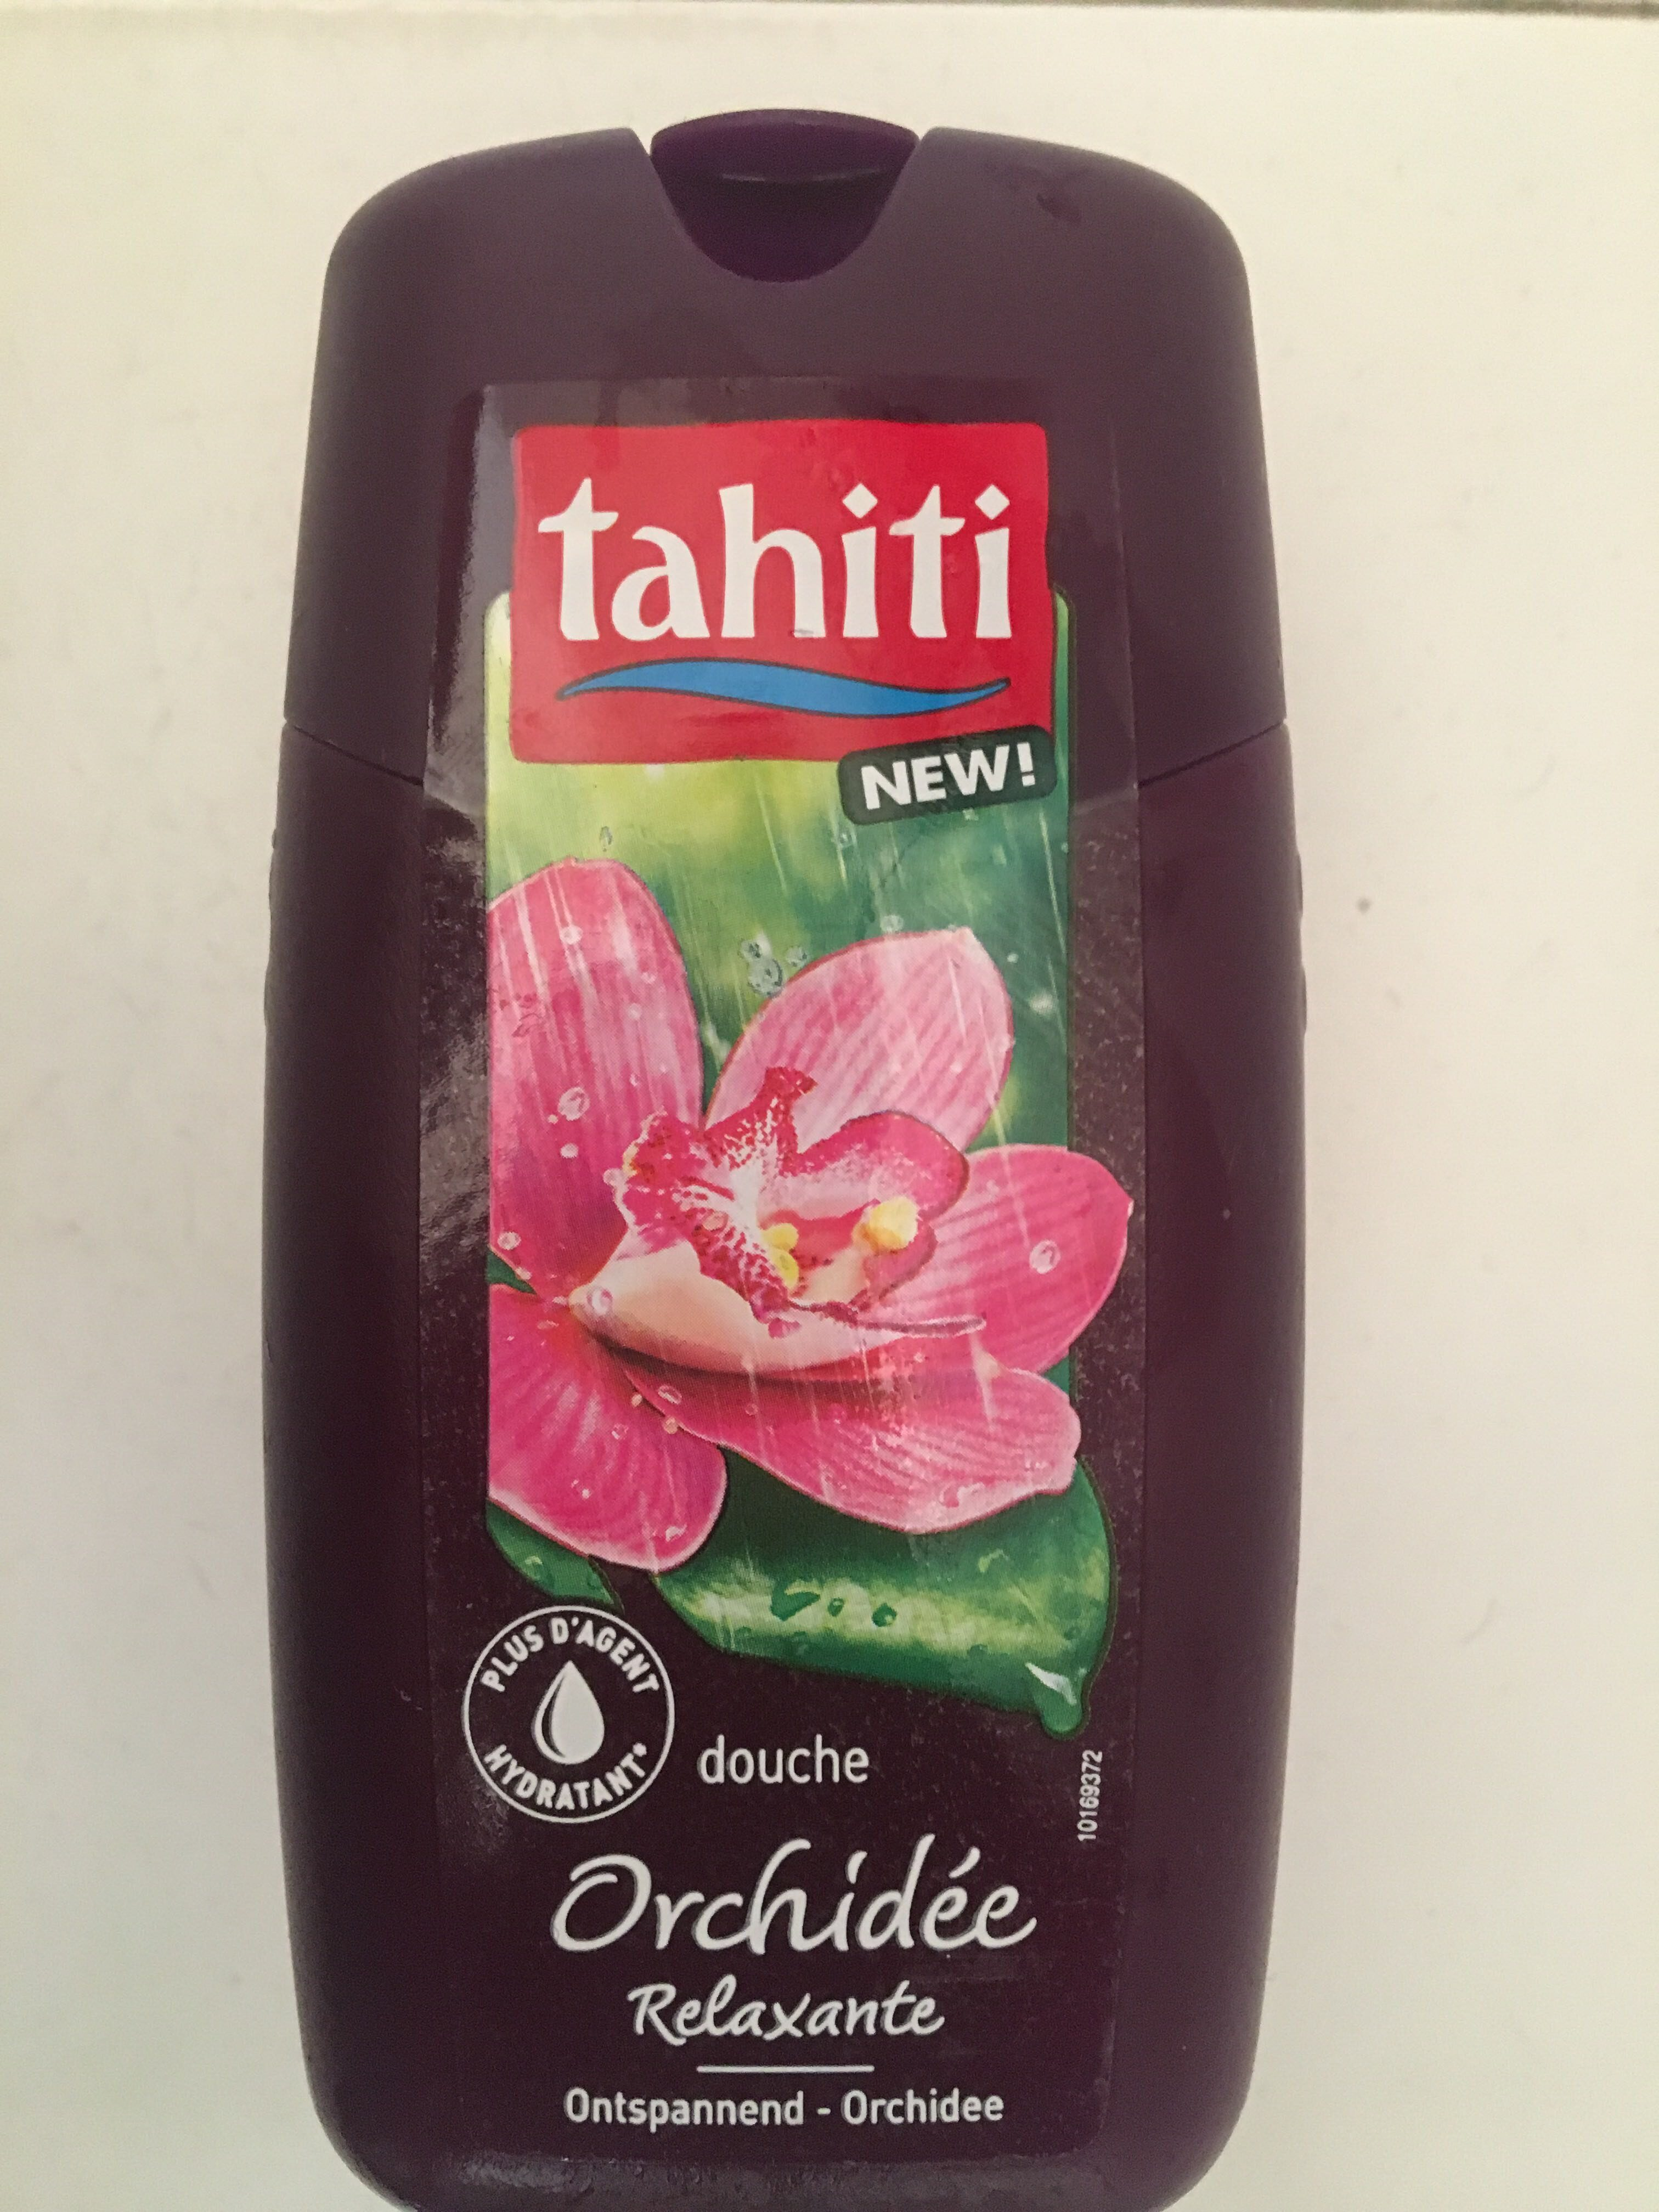 Tahiti douche - Orchidée relaxante - Product - fr